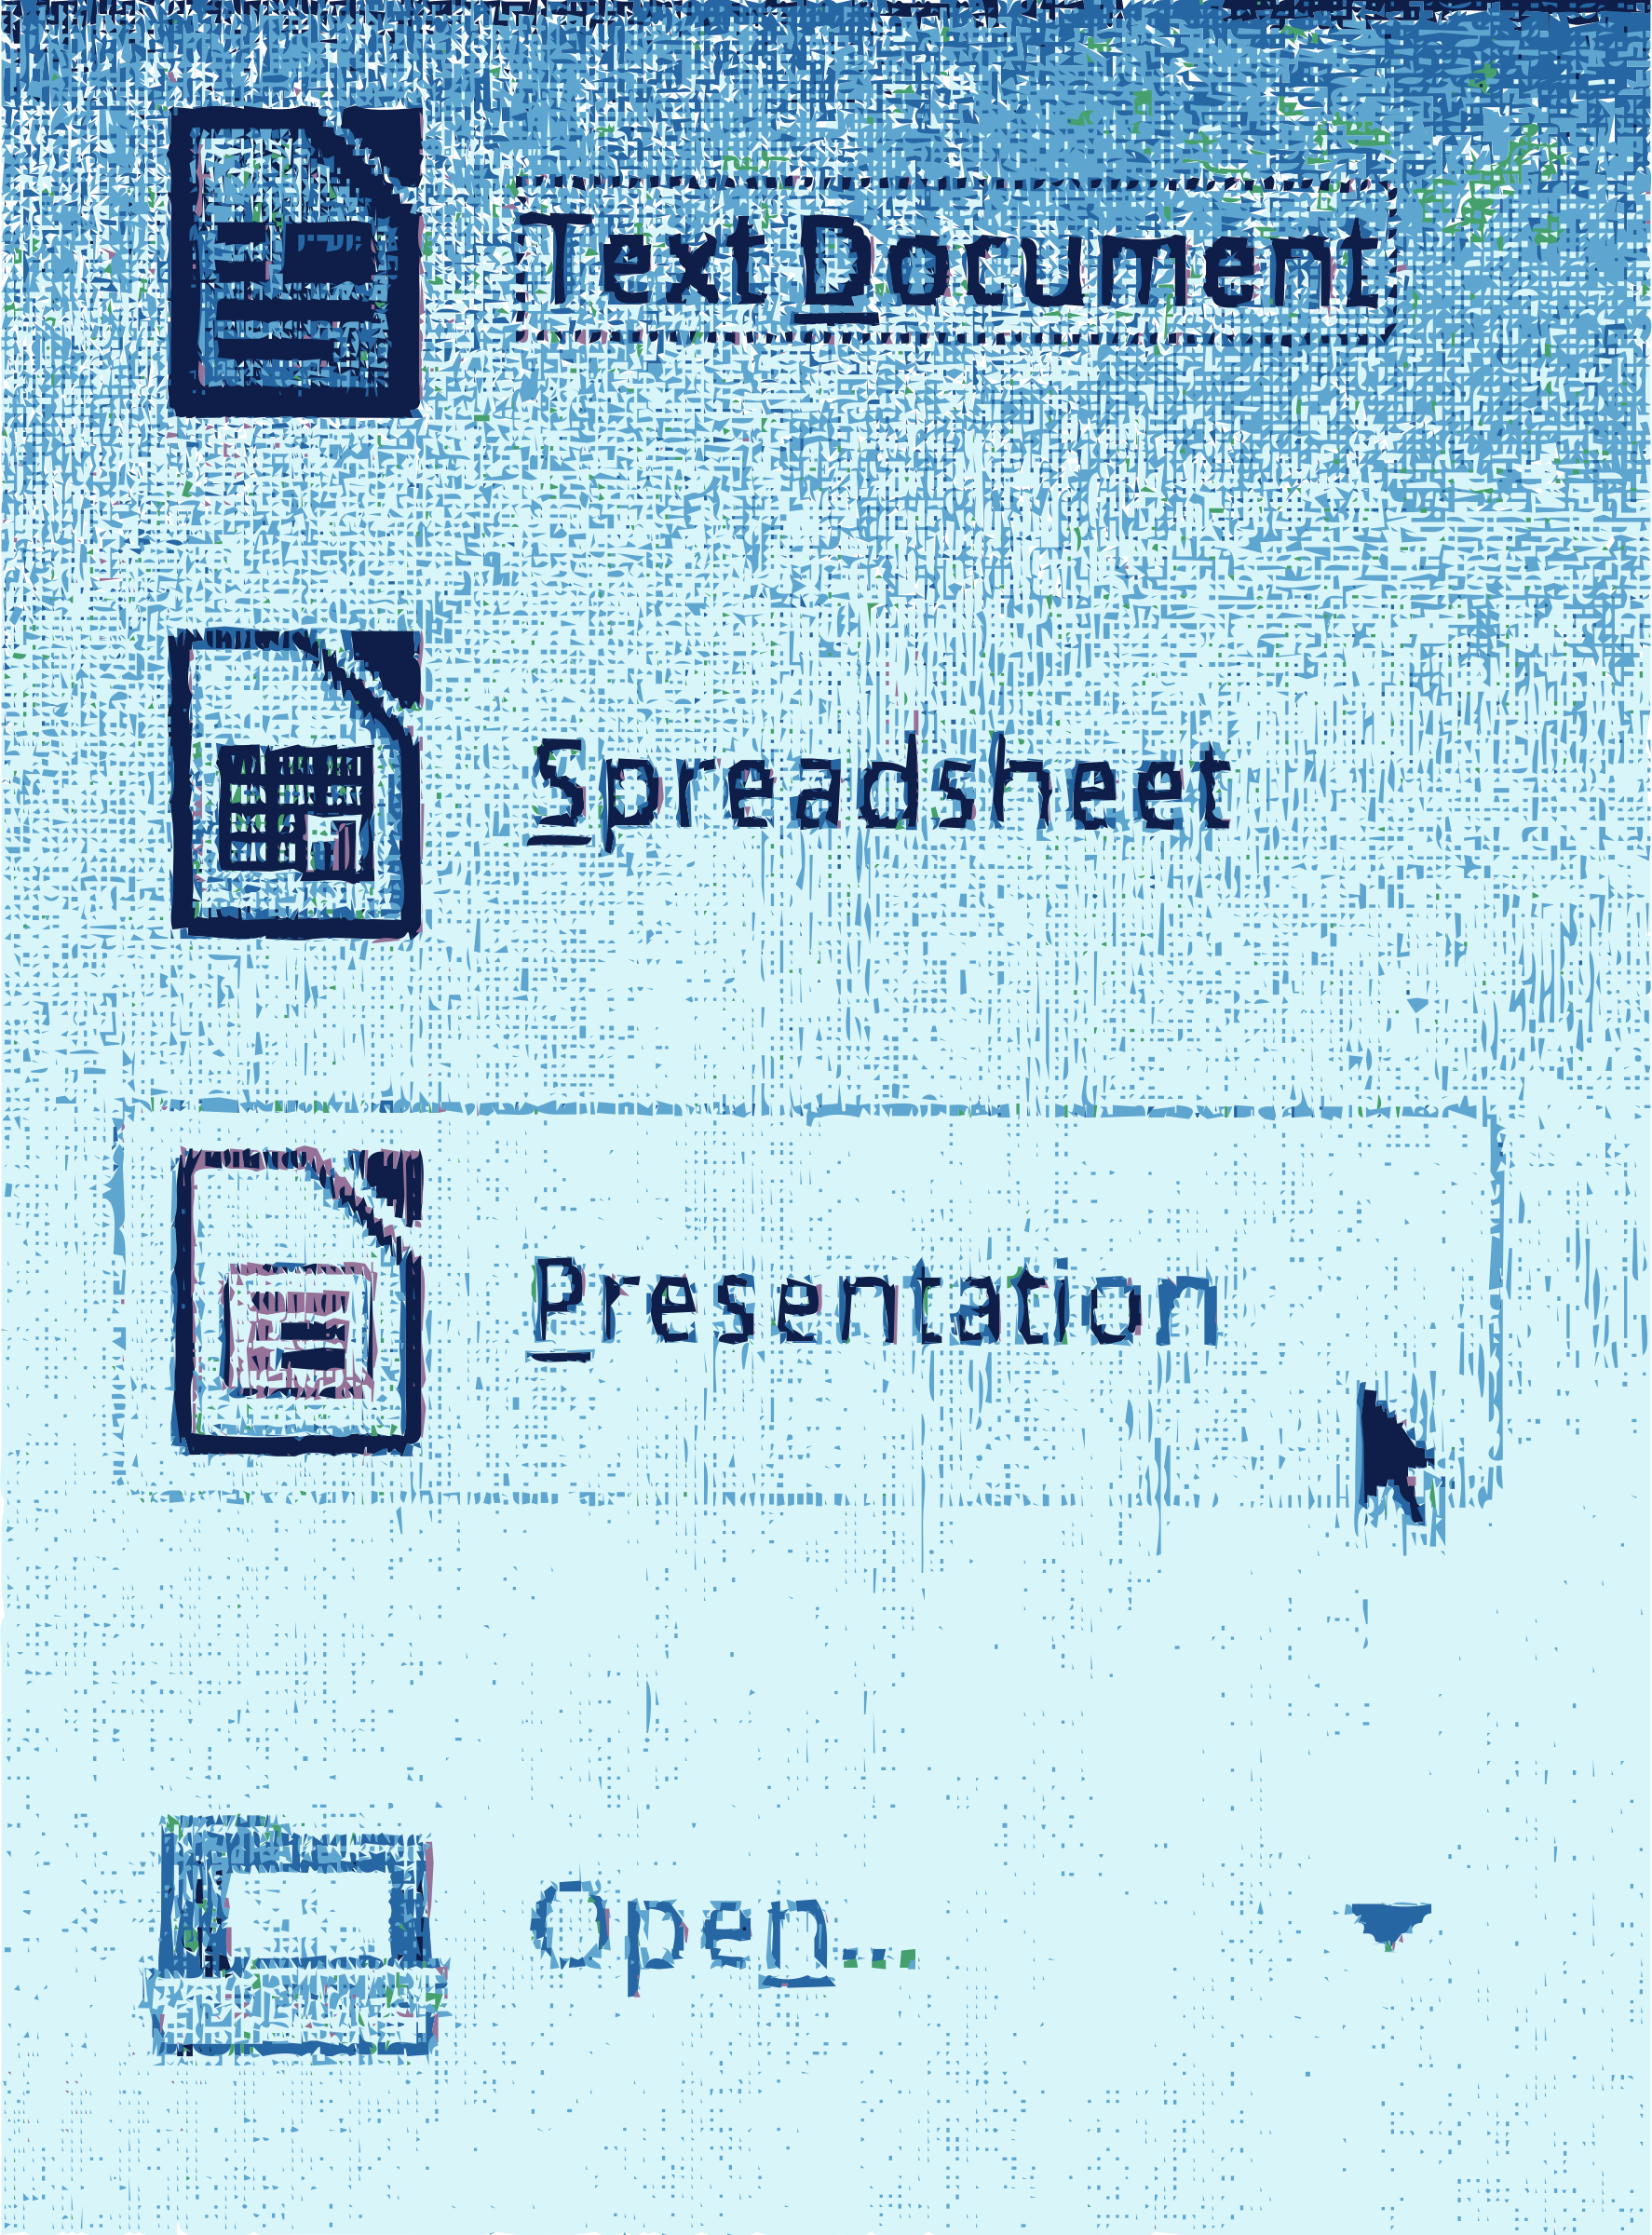 New libreoffice presentation template by rejon